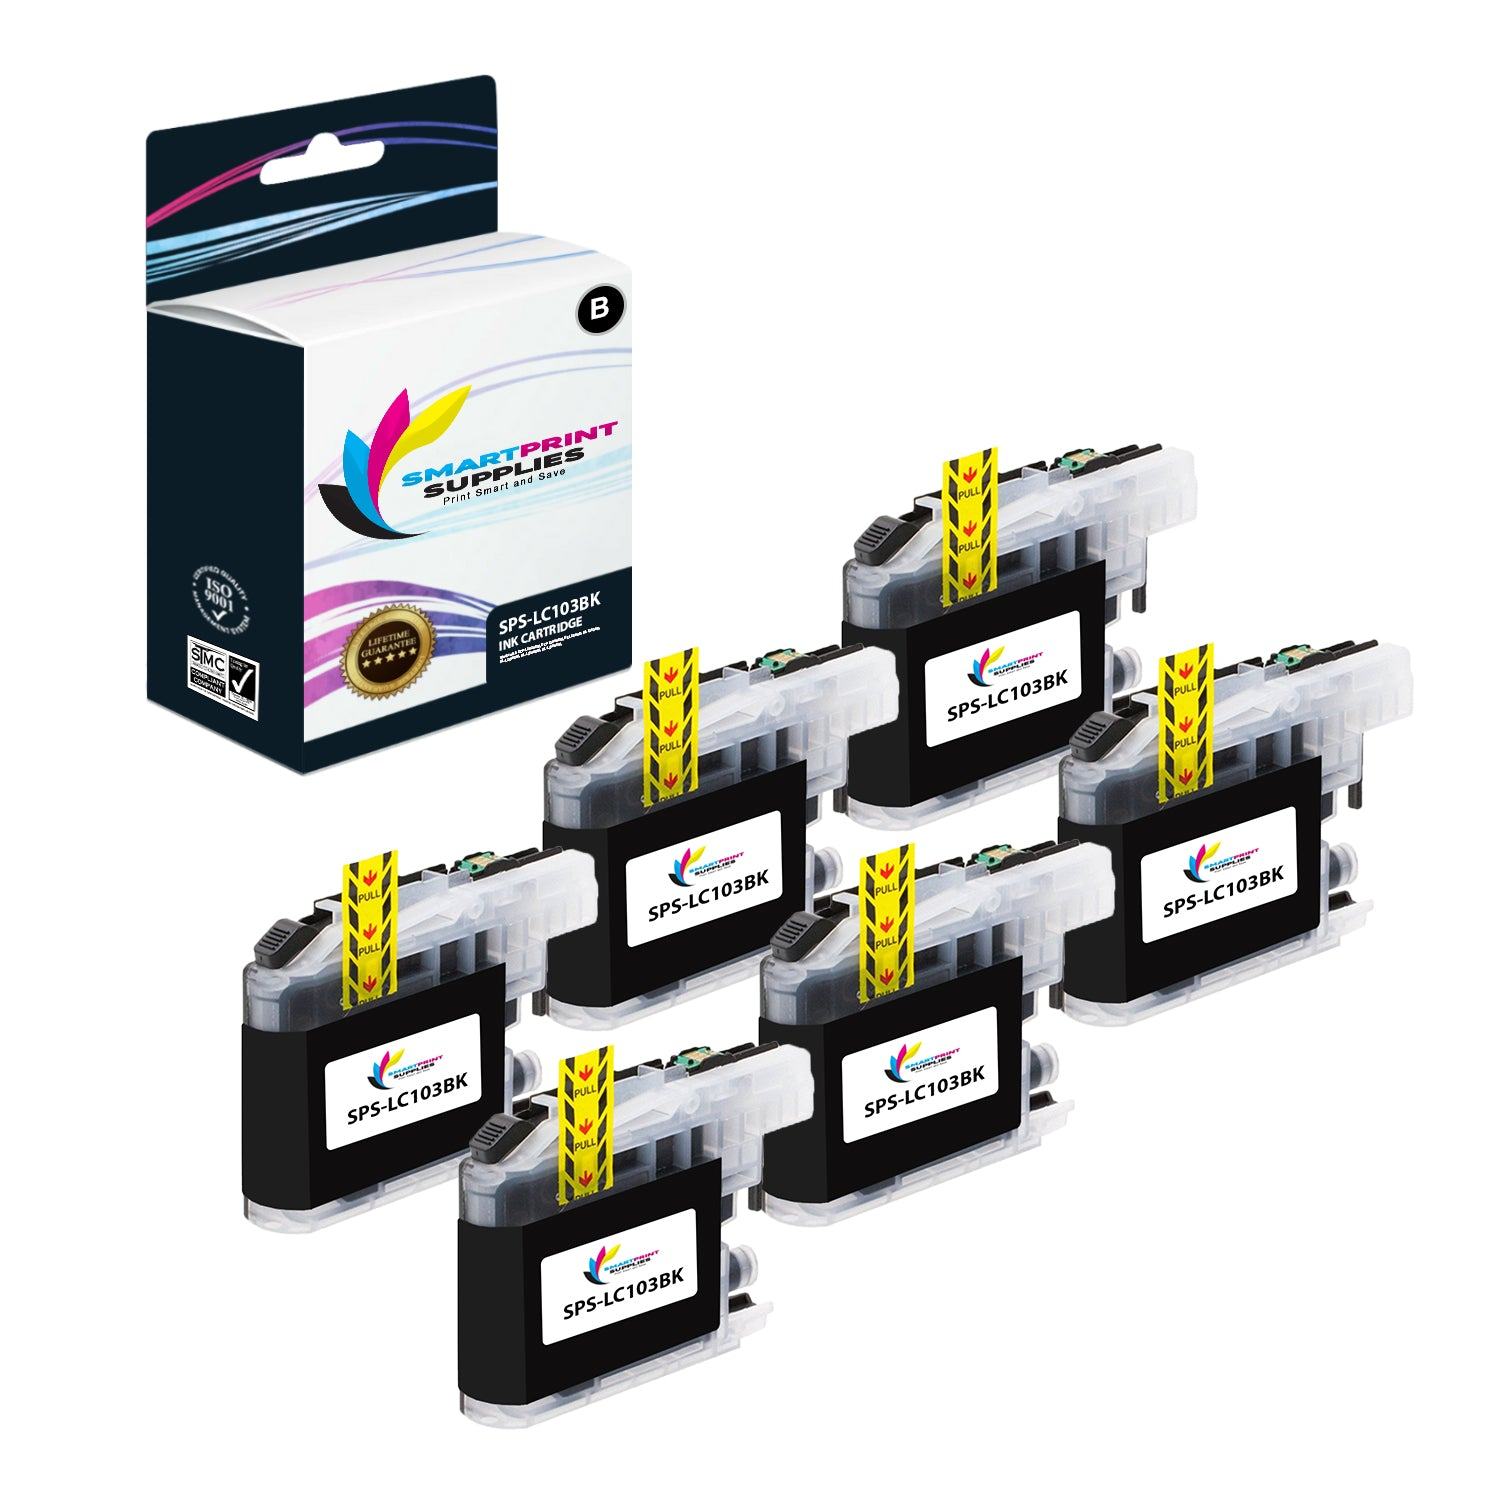 6 Pack Cyan, Magenta, Yellow Smart Print Supplies Compatible LC103 LC103C LC103M LC103Y Ink Cartridge Replacement for Brother MFC-J470DW J475DW J6920DW J285DW J870DW Printers